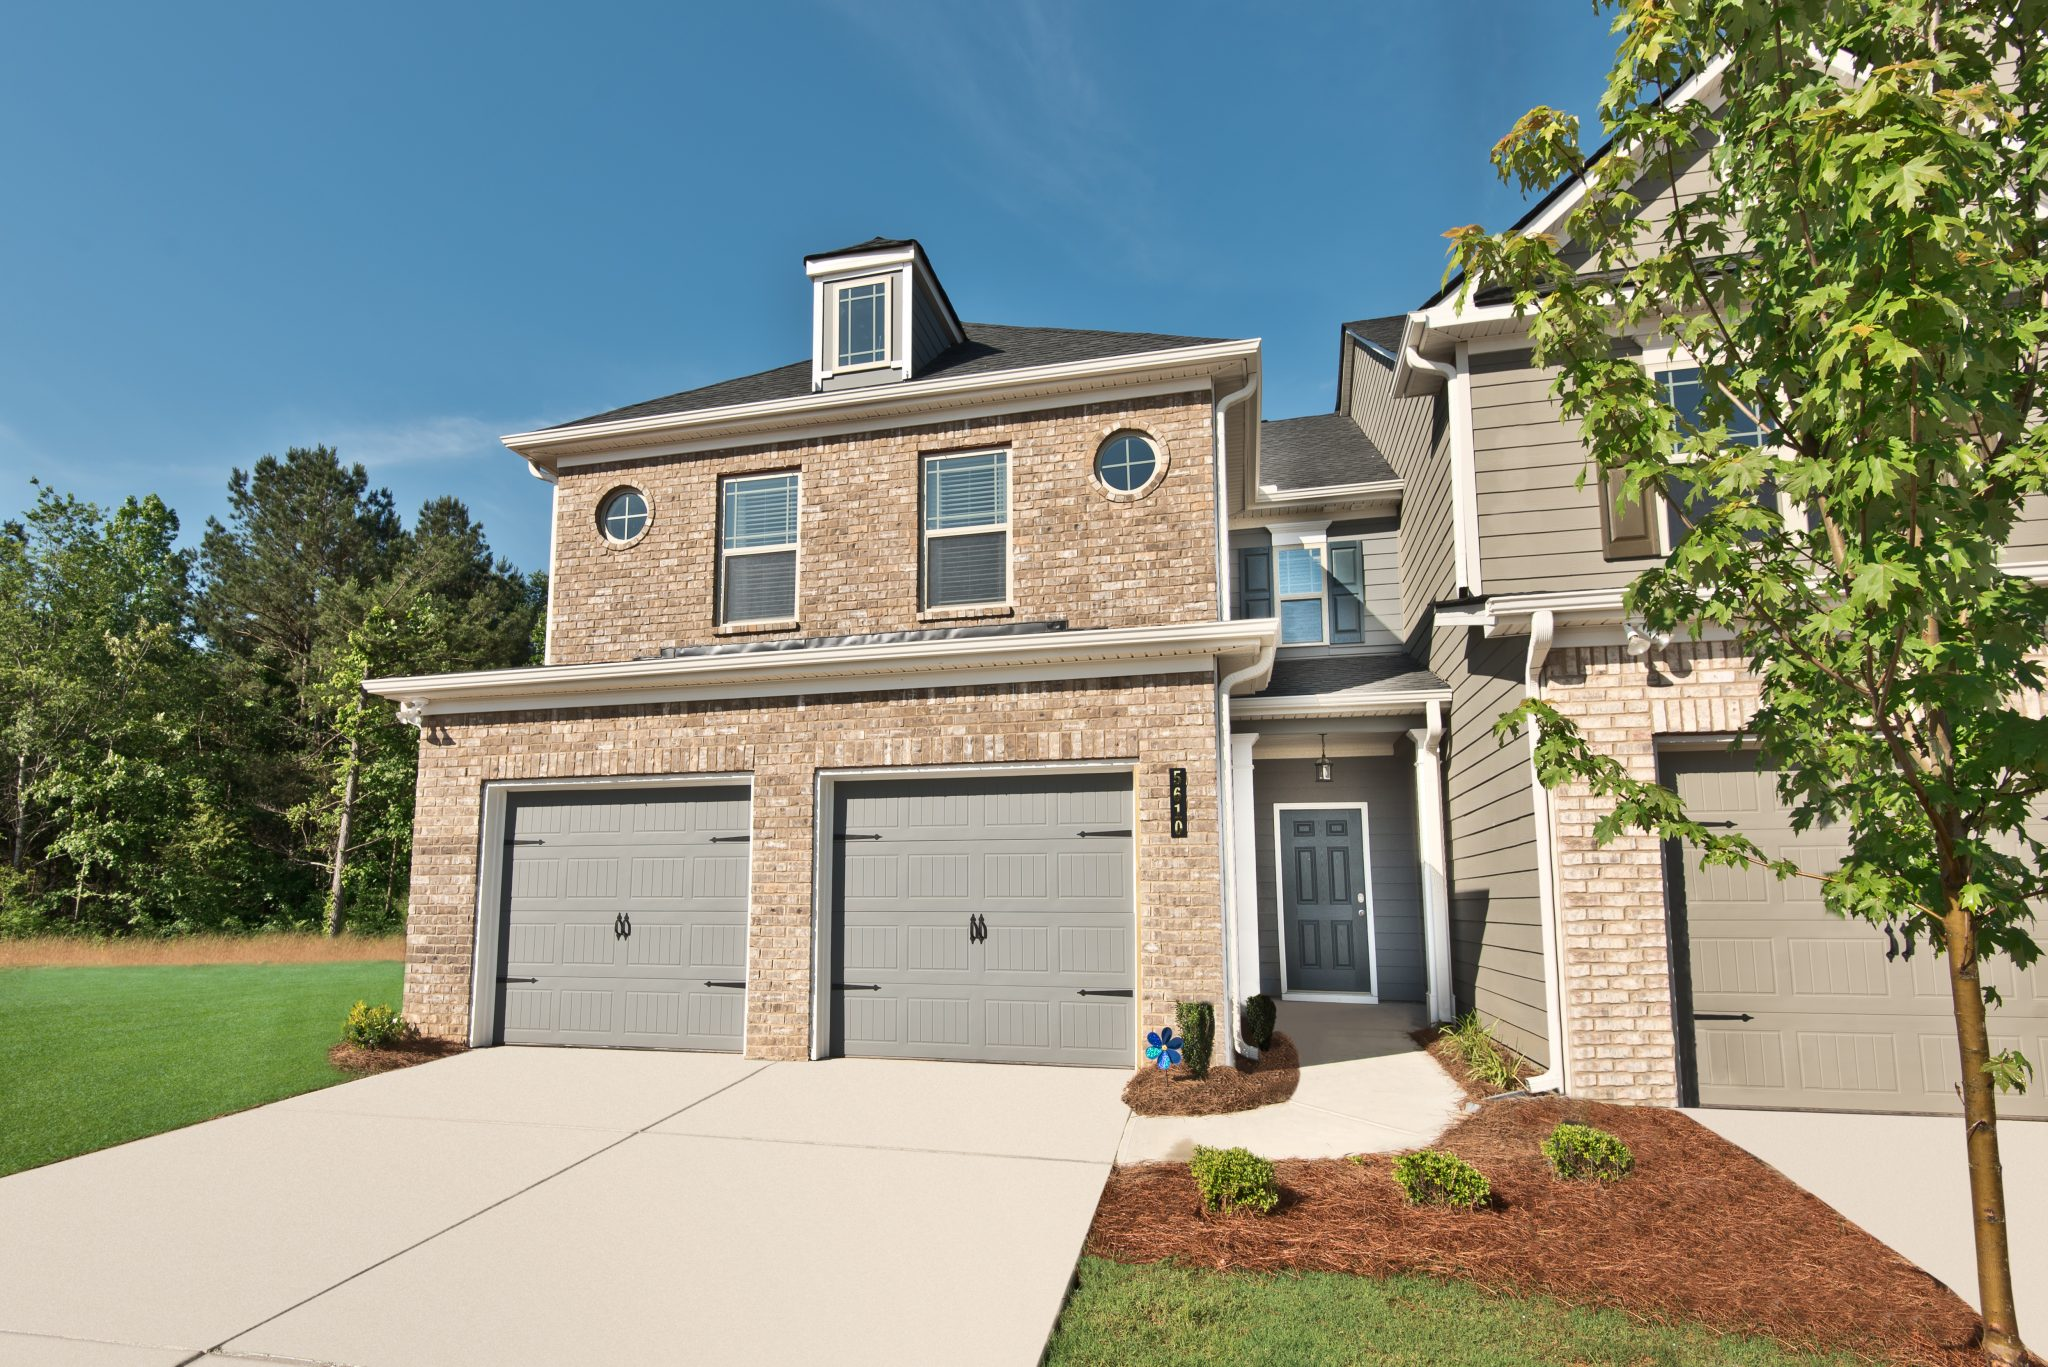 See what Powder Springs living offers townhome buyers in Village at West Cobb